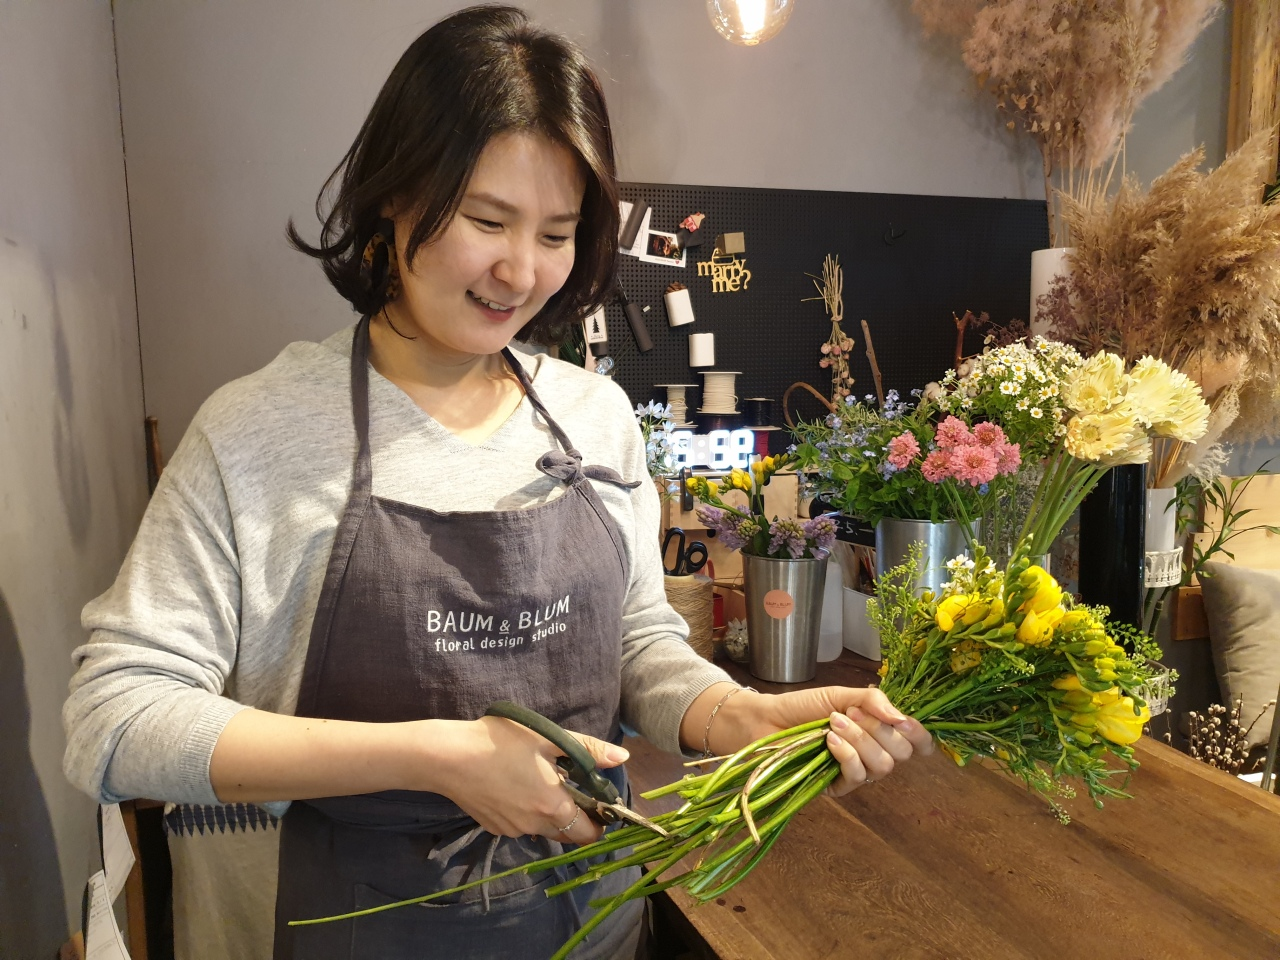 Florist Lee Se-been trims geraniums at Zien Shop in Yongin, Gyeonggi province. (Park Yuna/ The Korea Herald)